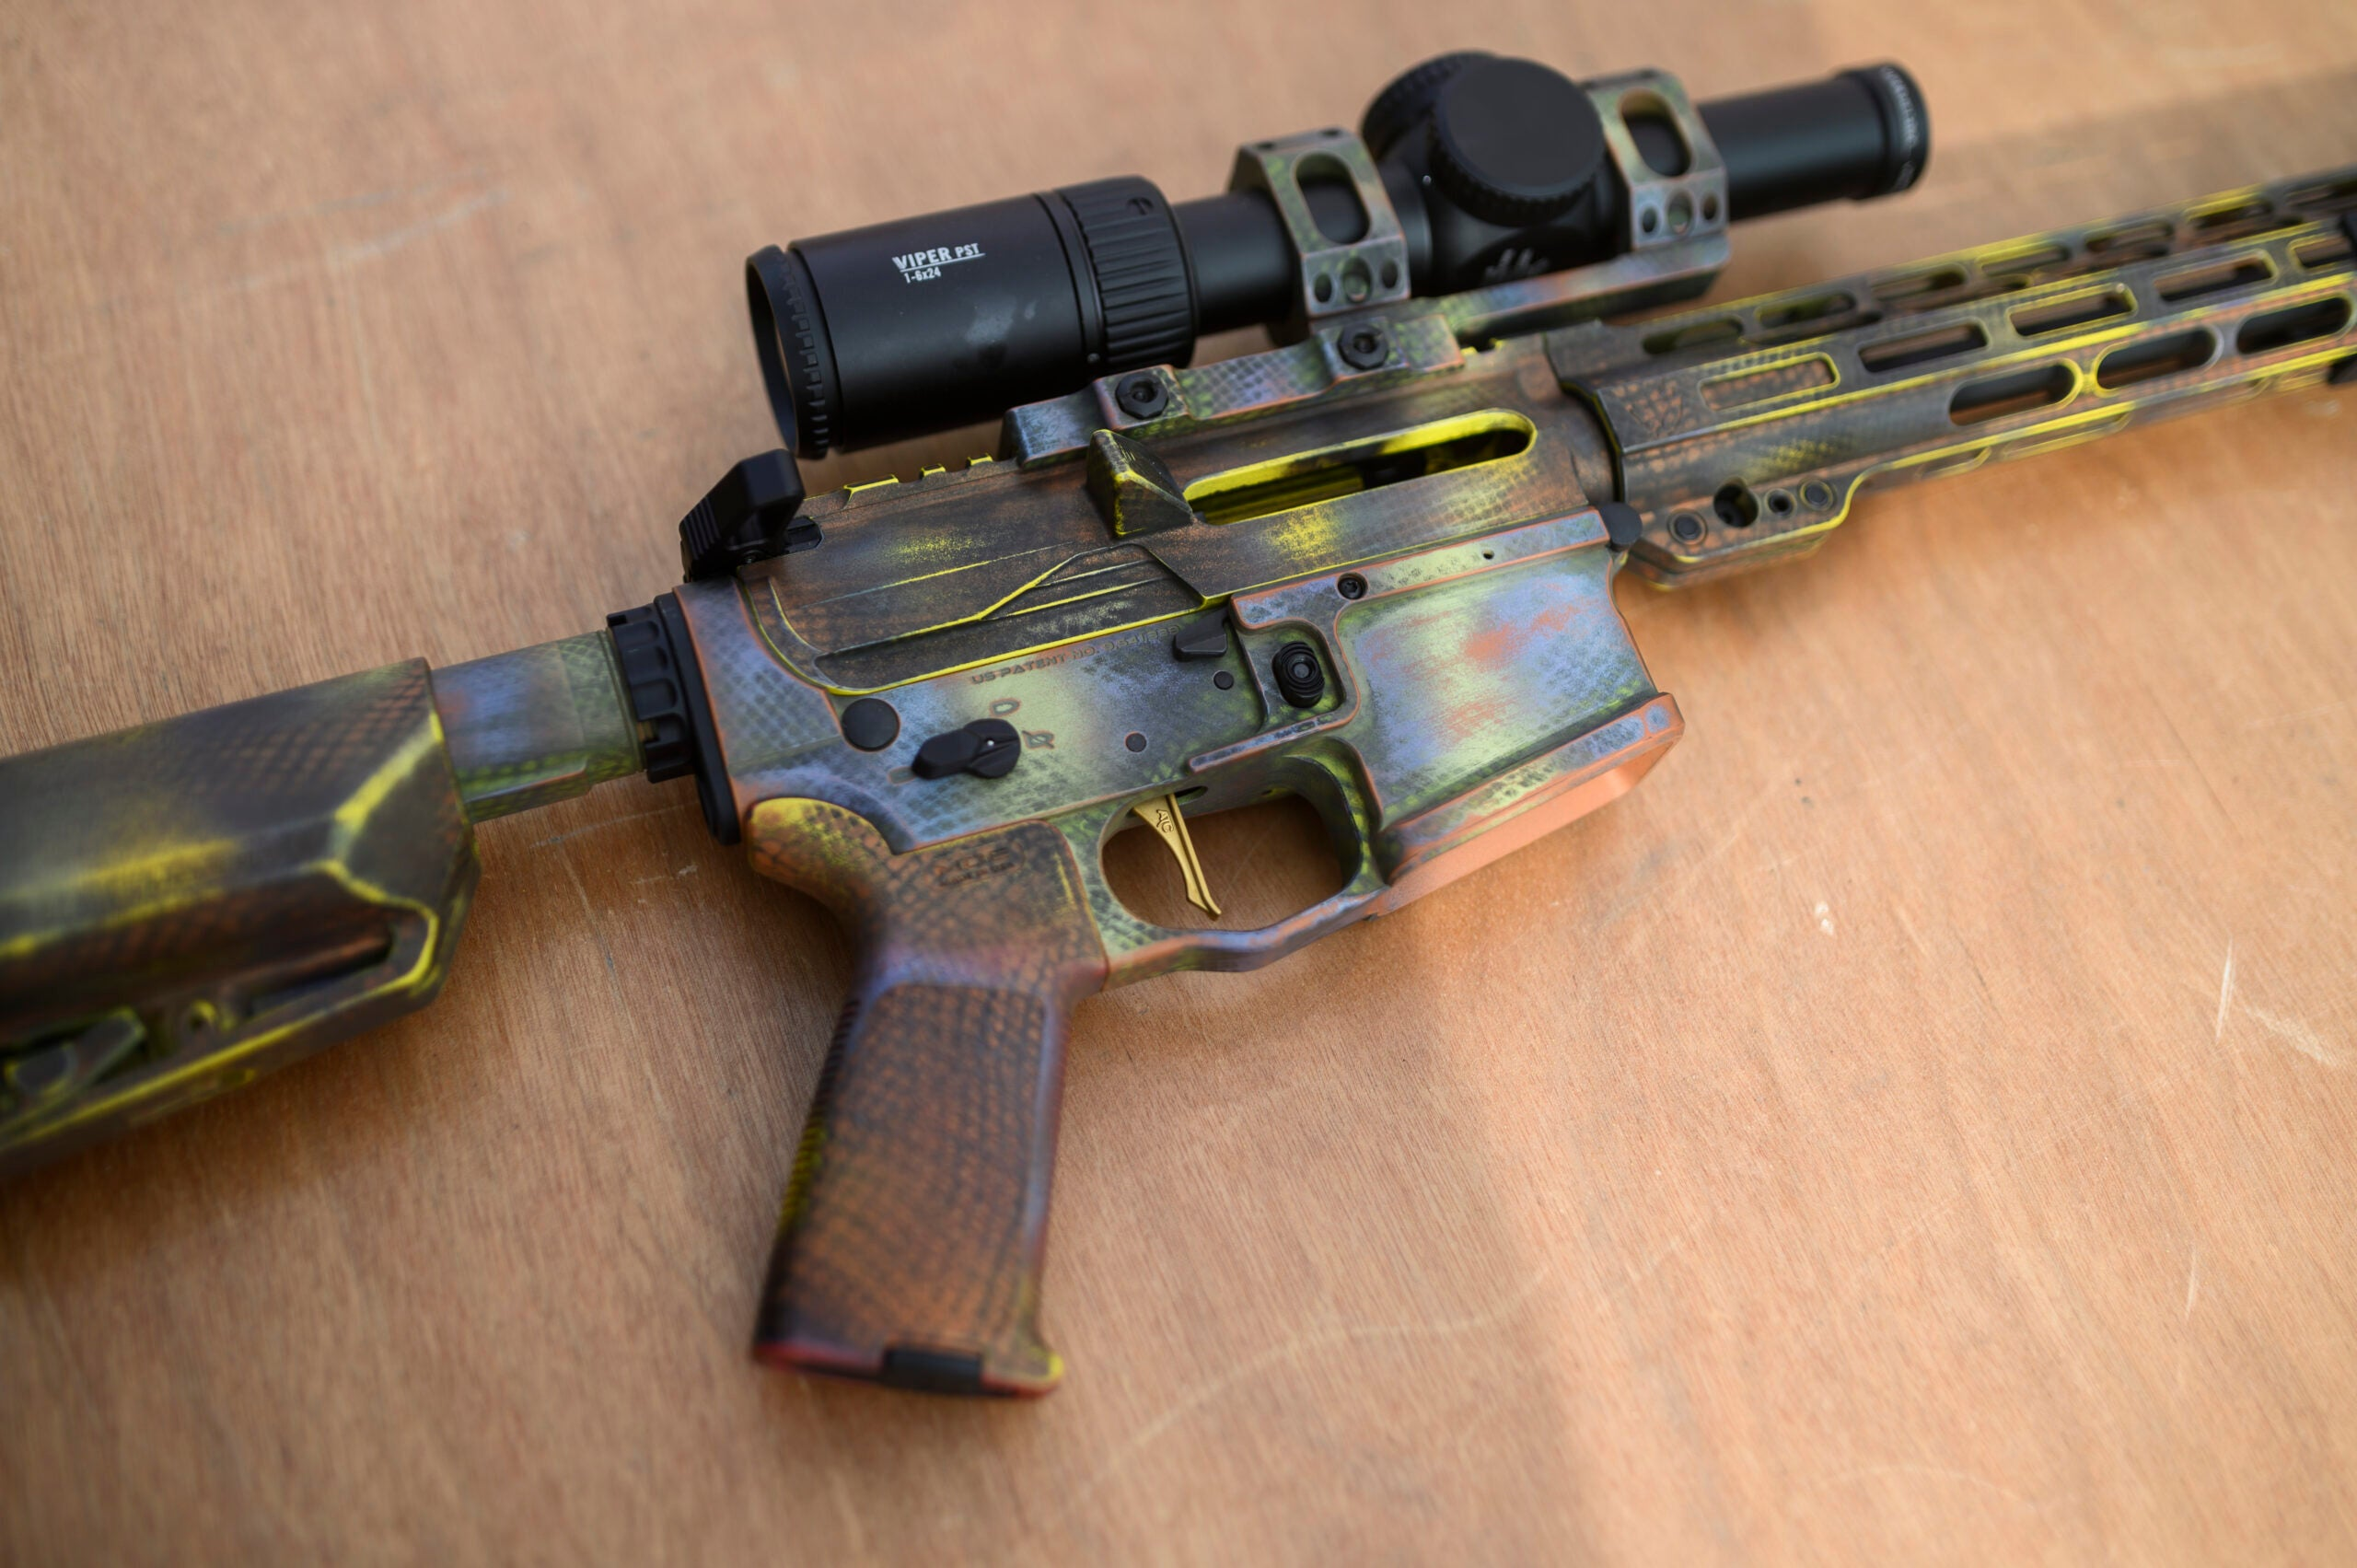 bight colored competition AR rifle topped with a Viper scope